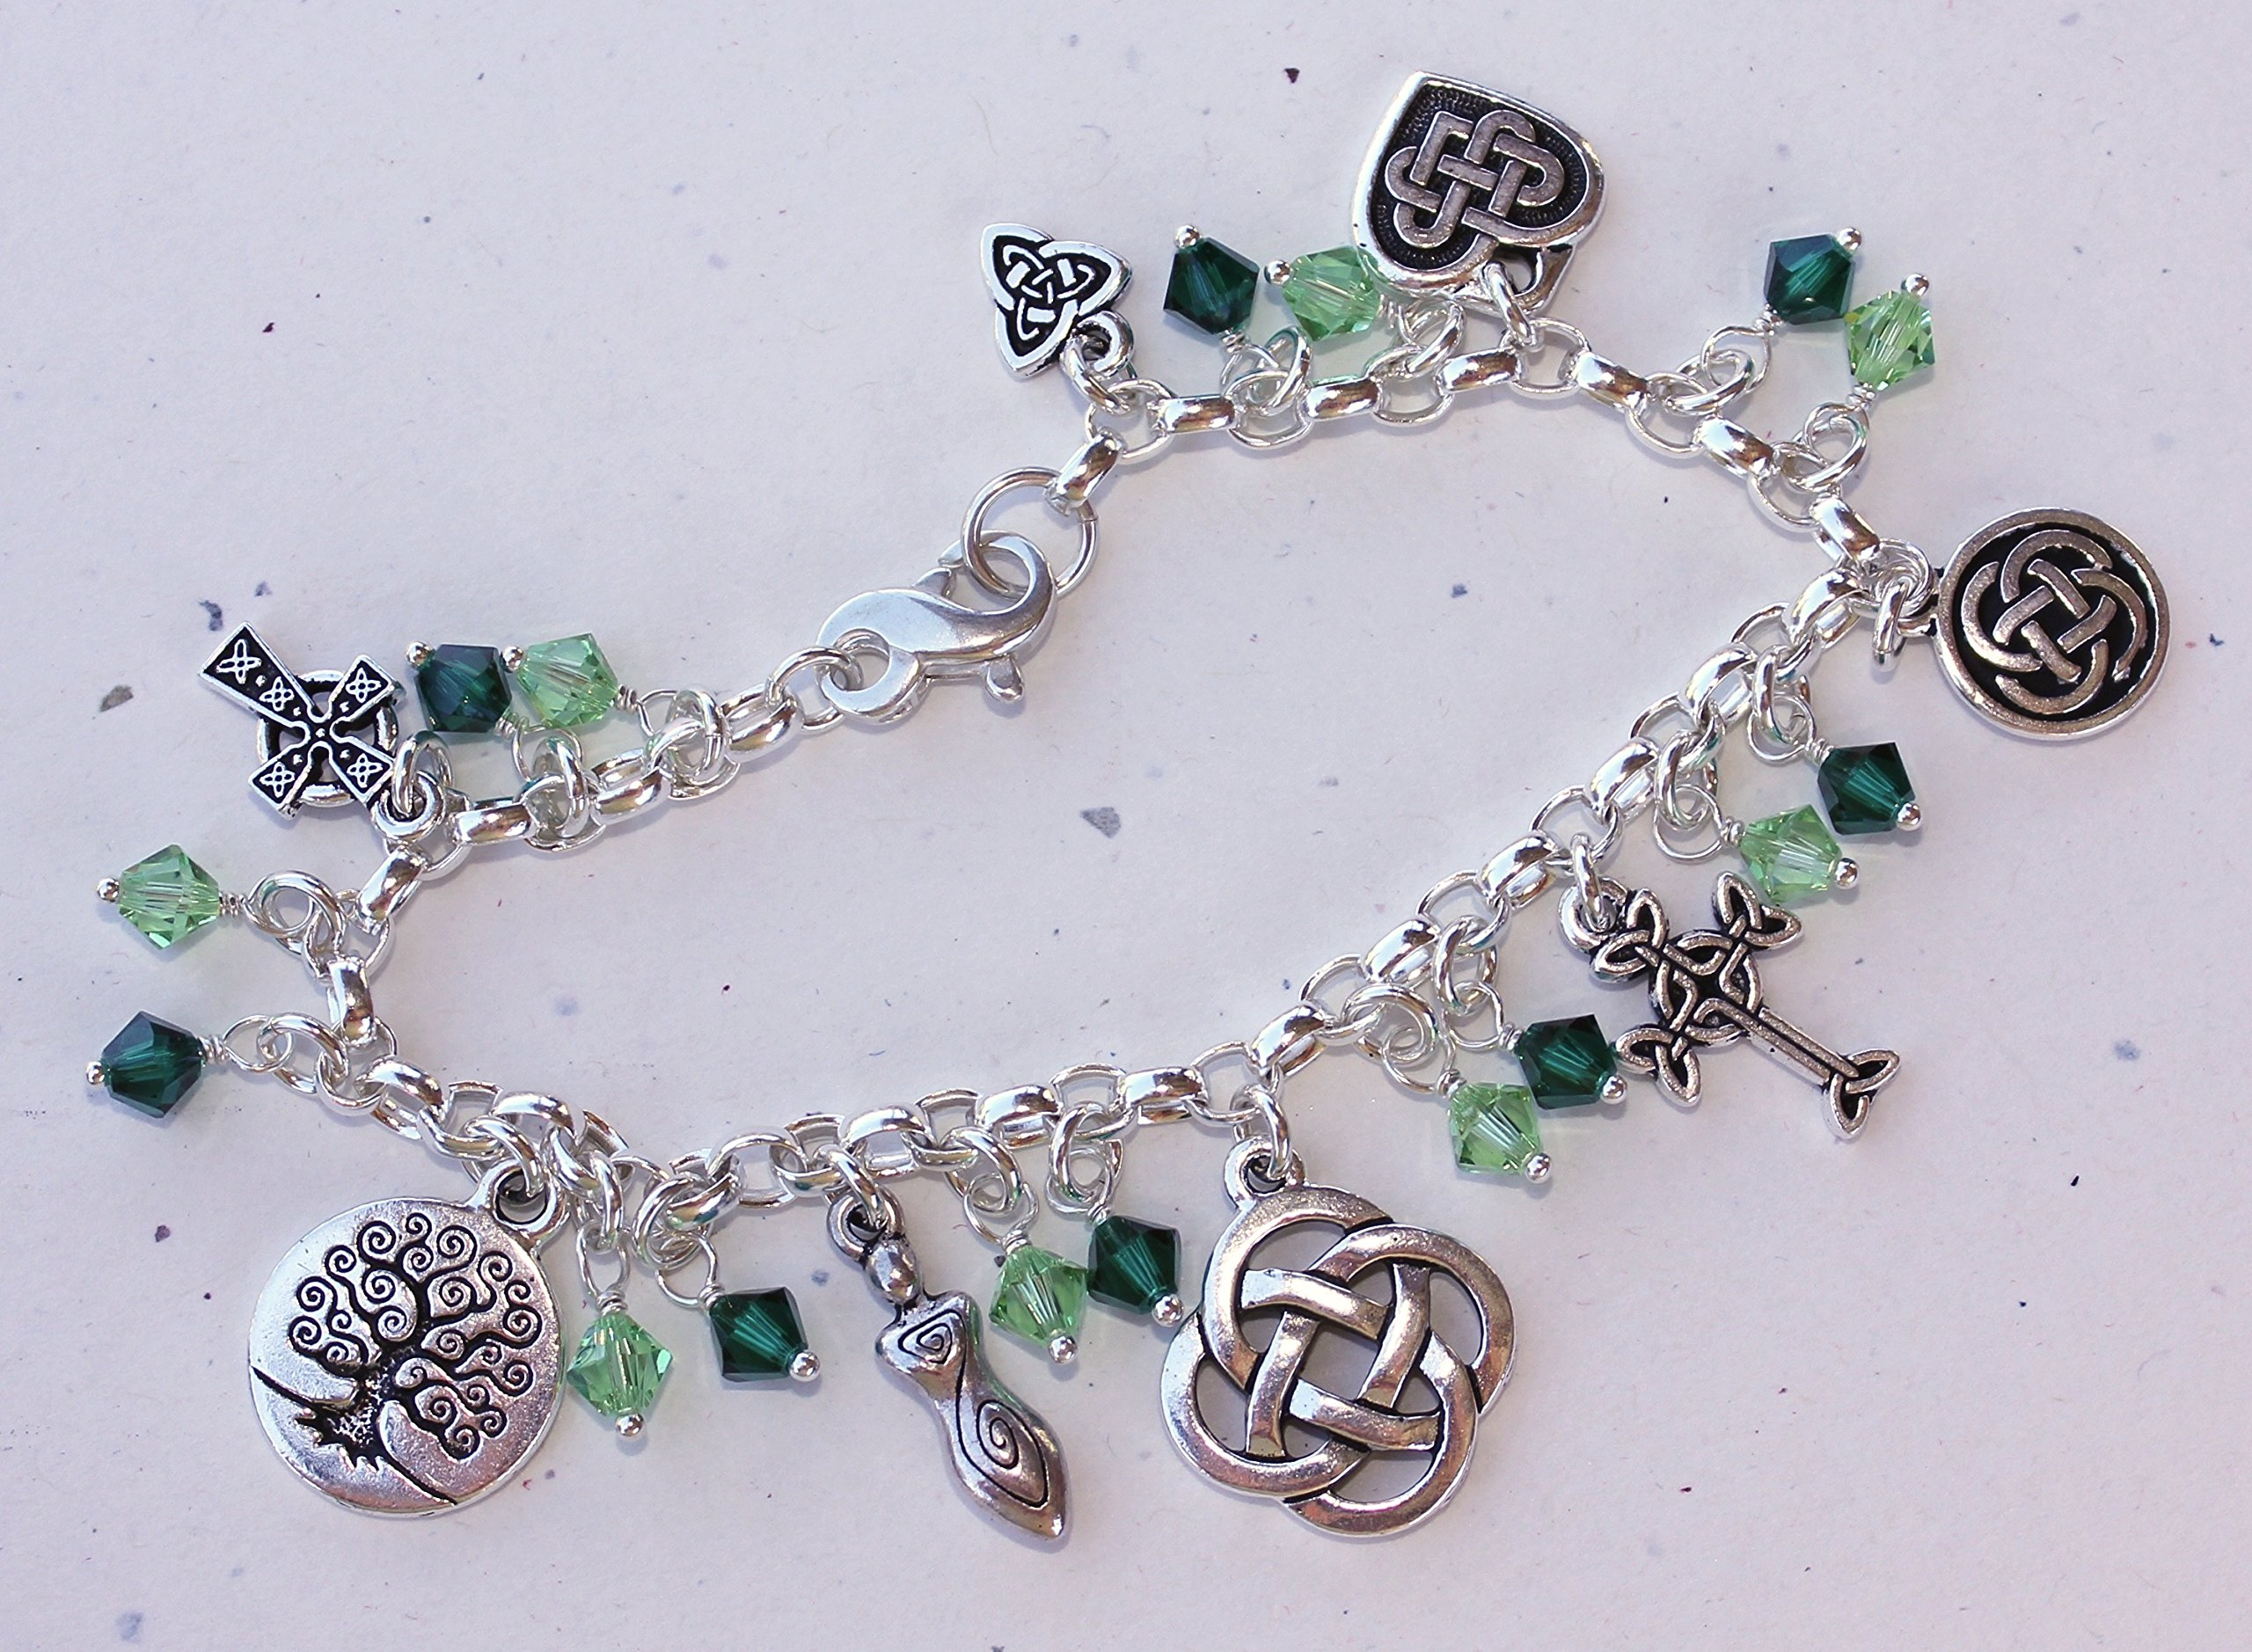 Silver Plated Deluxe Celtic Knots Charm Bracelet, Heavy Sterling Silver Chain, Green Crystals- Size XL (8.5 Inches (Extra Large)) by Night Owl Jewelry (Image #7)